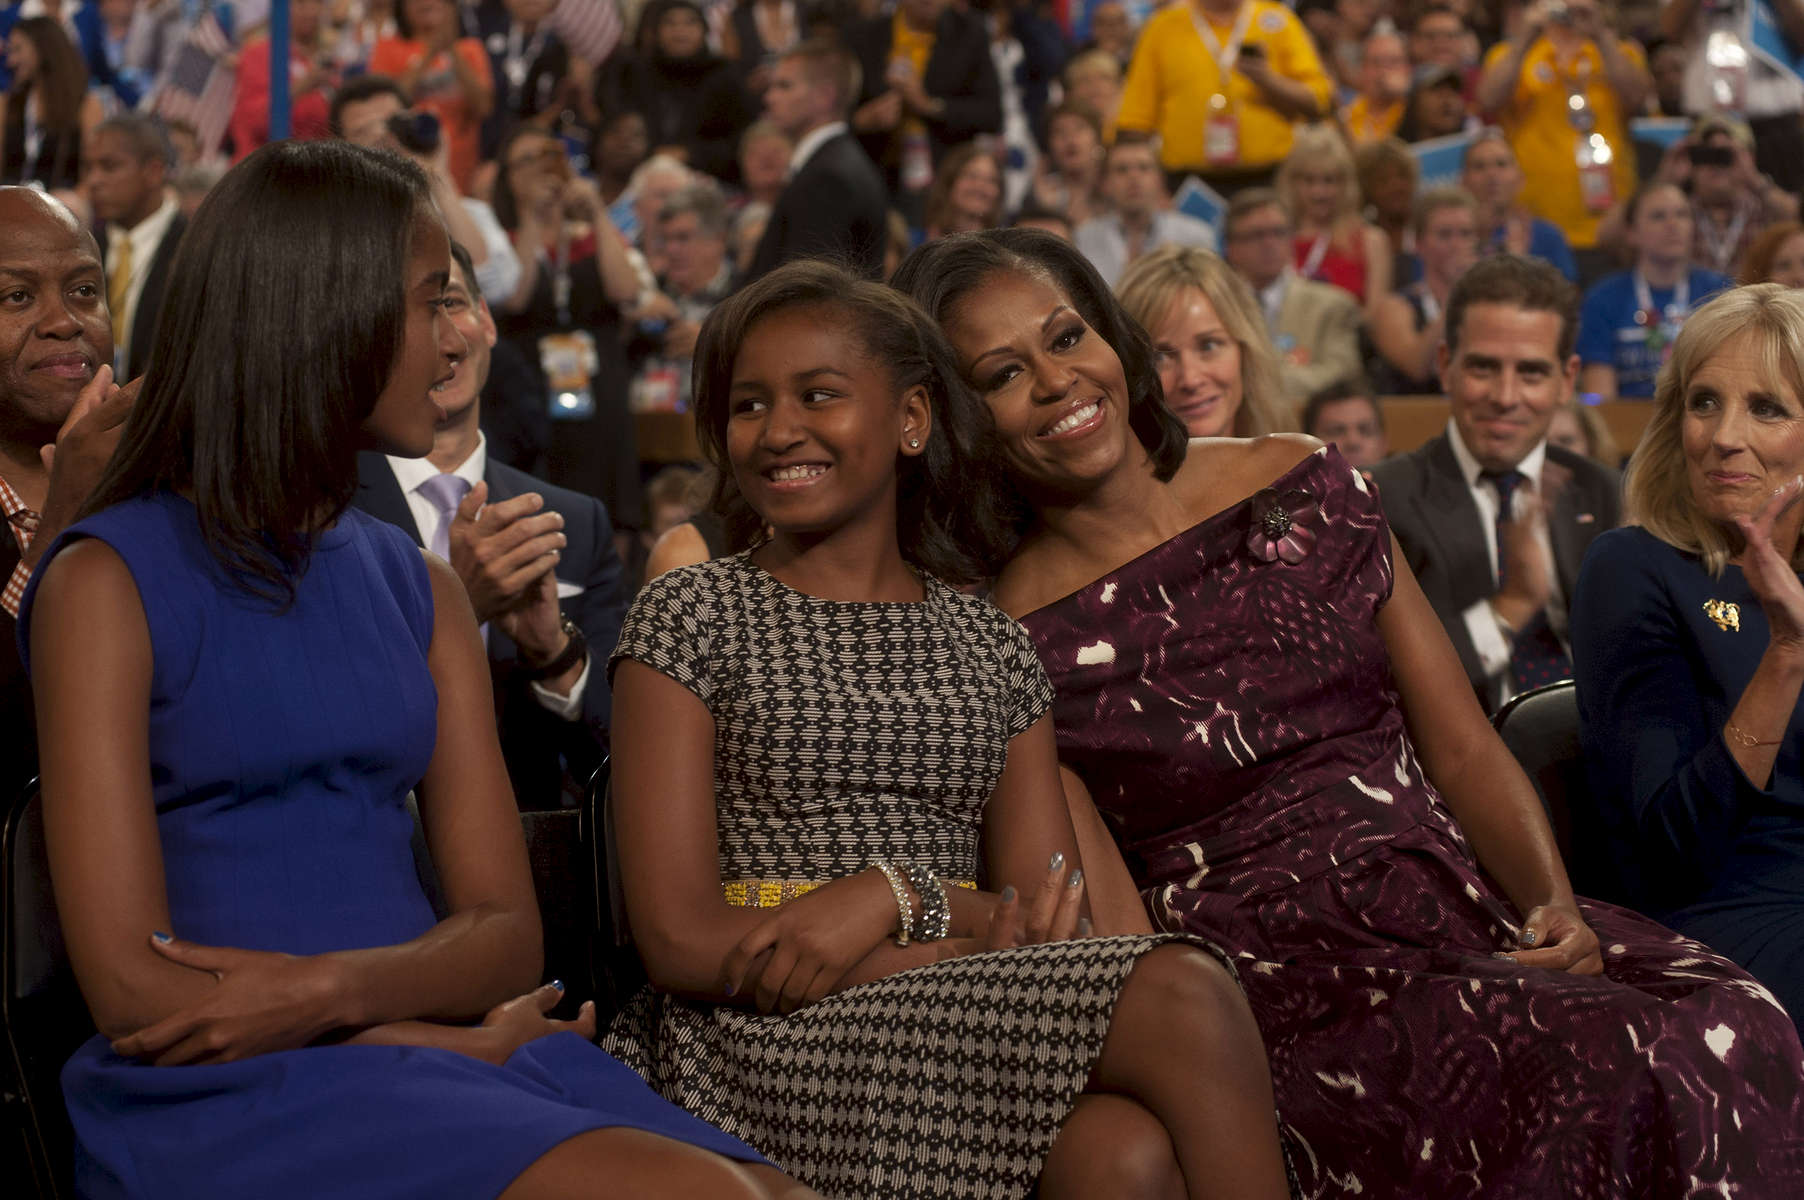 September 6, 2012 - CHARLOTTE, NC: First Lady Michelle Obama bumps heads affectionately with her youngest daughter Sasha as her oldest daughter Malia looks on, during President Barack Obama's speech at the 2012 Democratic National Convention in Charlotte. (Scout Tufankjian for Obama for America/Polaris)